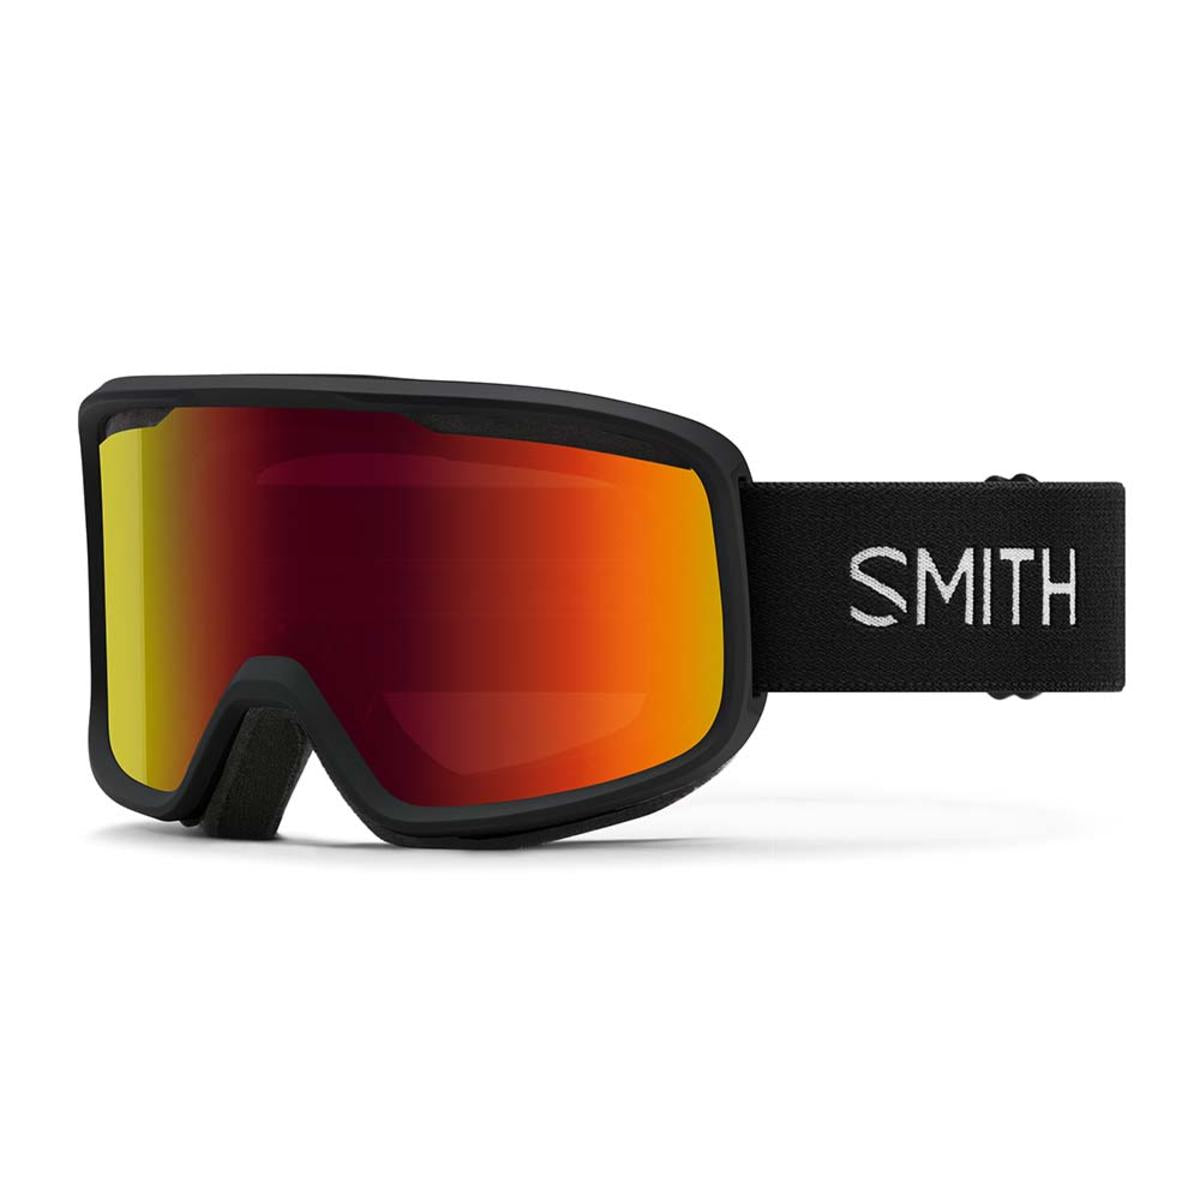 Smith Optics Frontier Goggles Red Sol-X Mirror - Black Frame